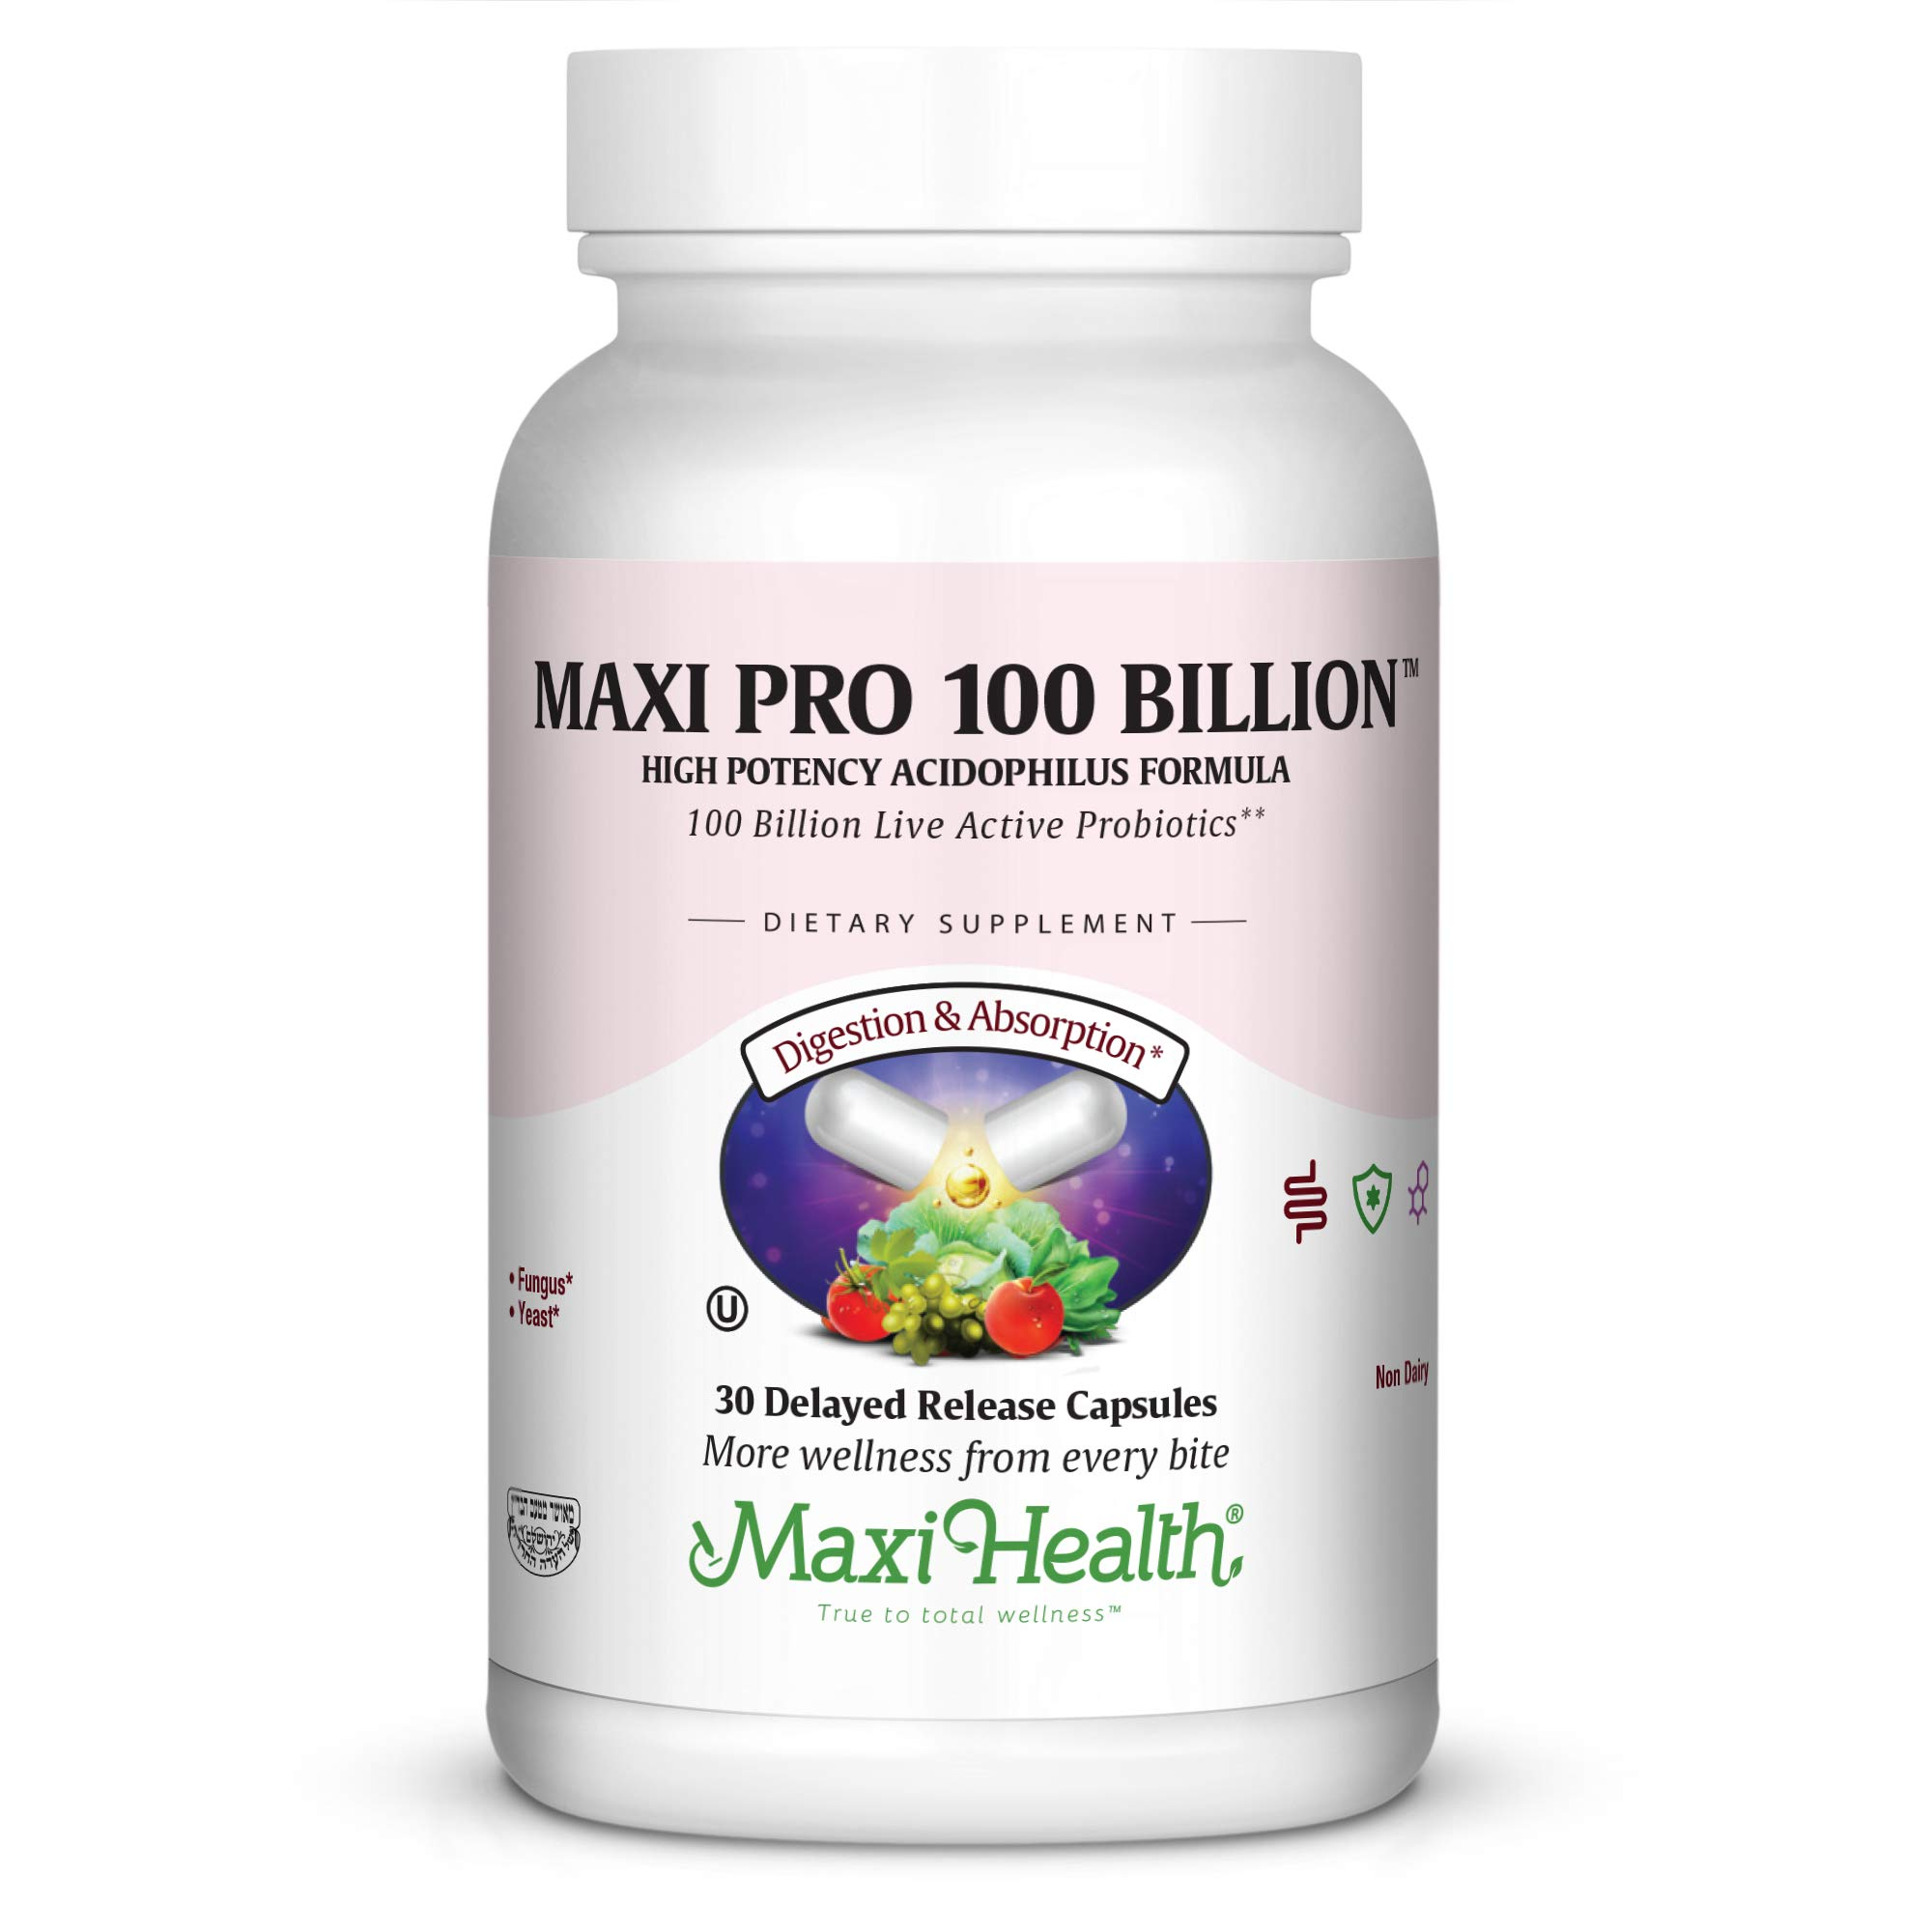 Maxi Pro 100 Billion Probiotics Supplement - High Potency Acidophilus Formula for Digestive & Gut Health - Easy to Swallow, Delayed Release Veggie Capsules for Men & Women – 30 Count